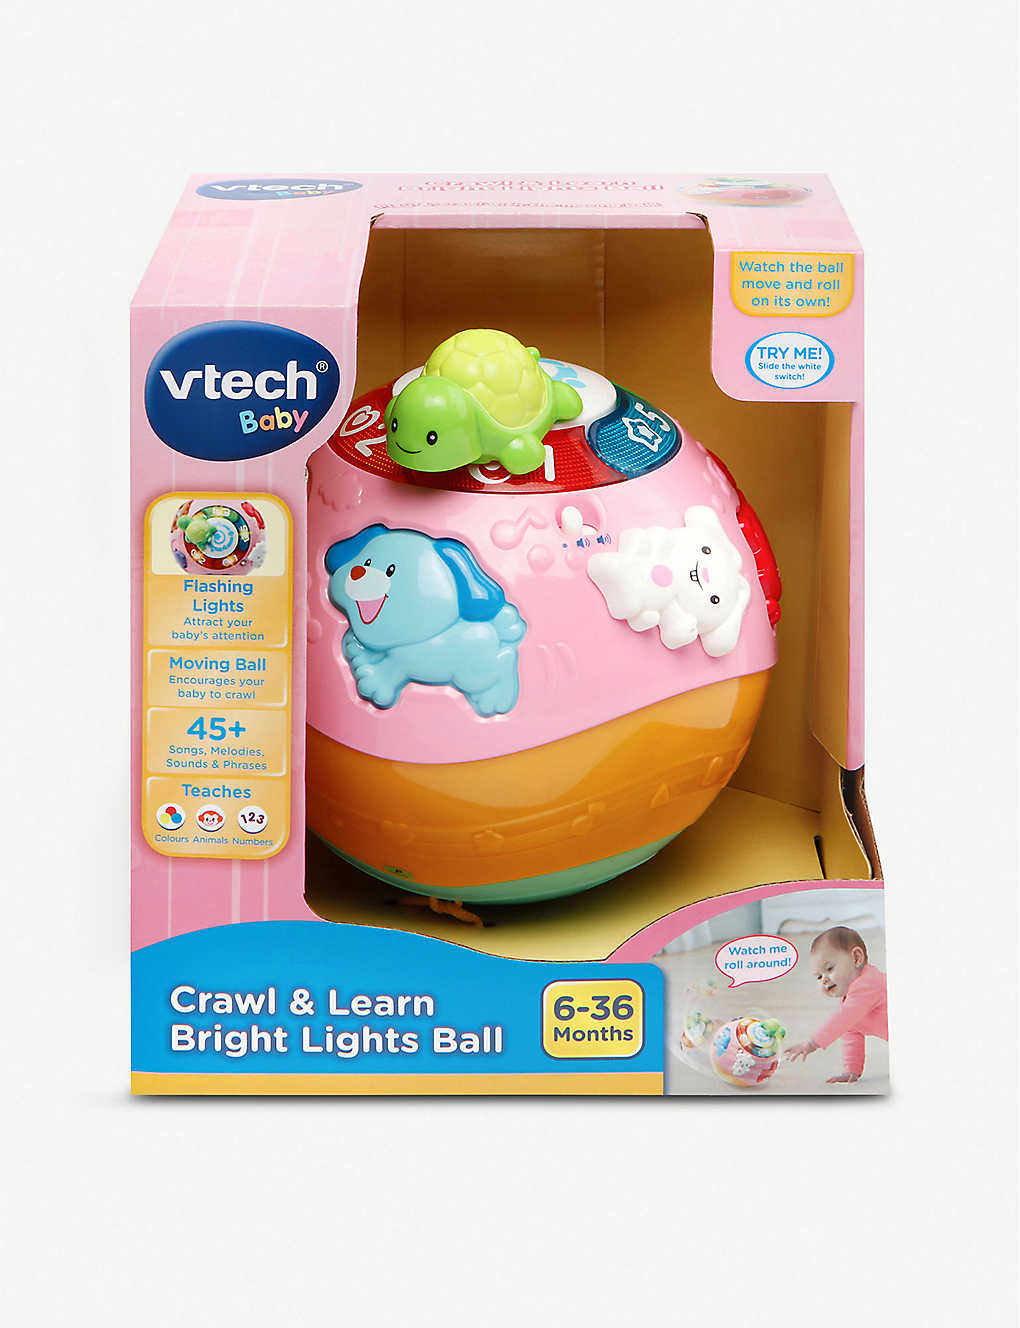 VTECH: Crawl and Learn Bright Lights Ball